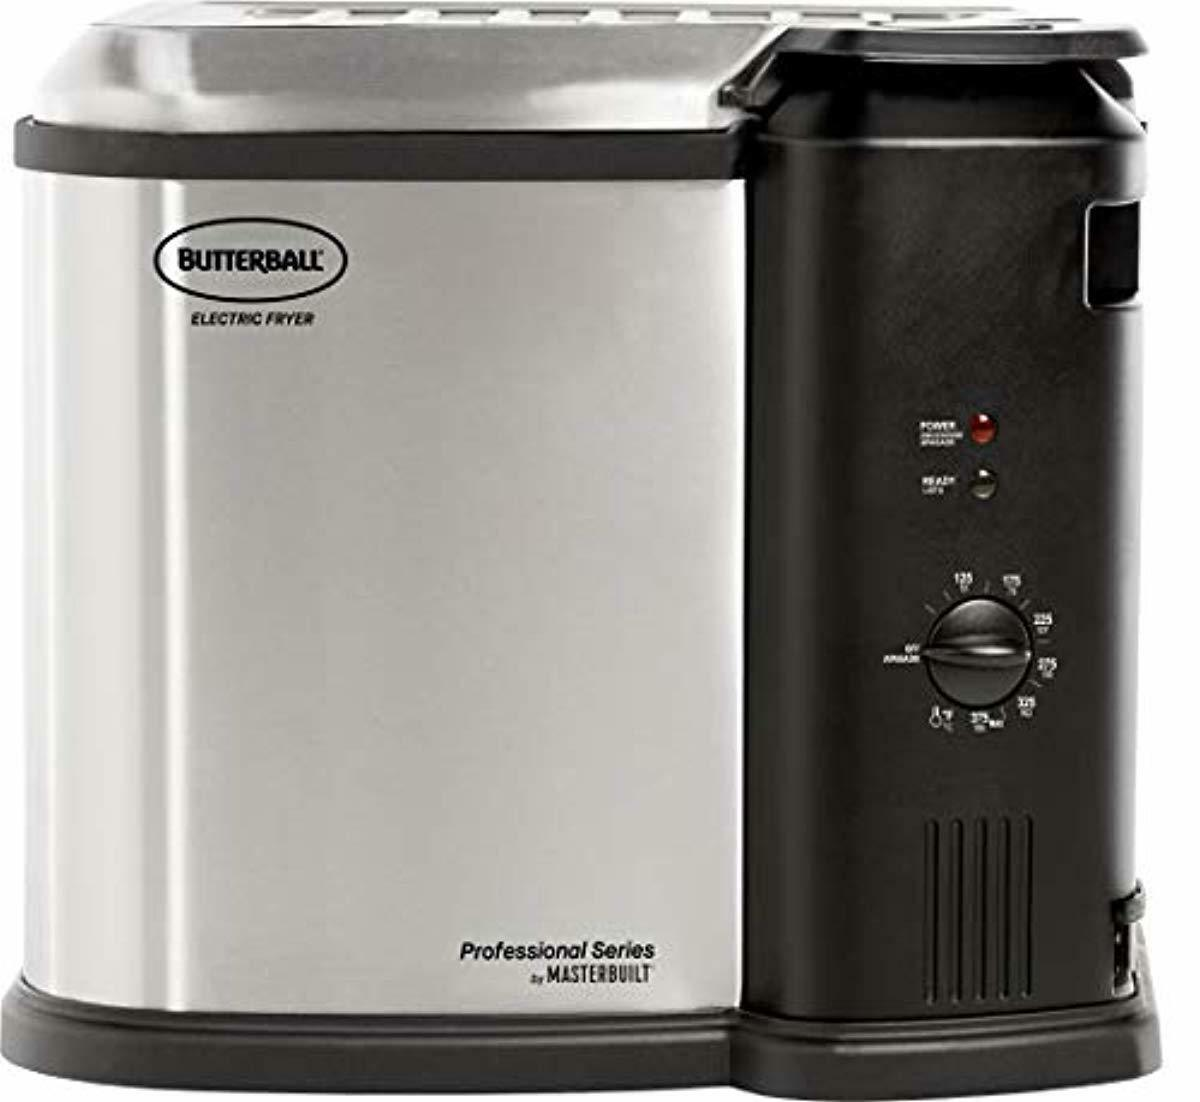 Masterbuilt Butterball XL Electric Fryer Timer Stainless 20L